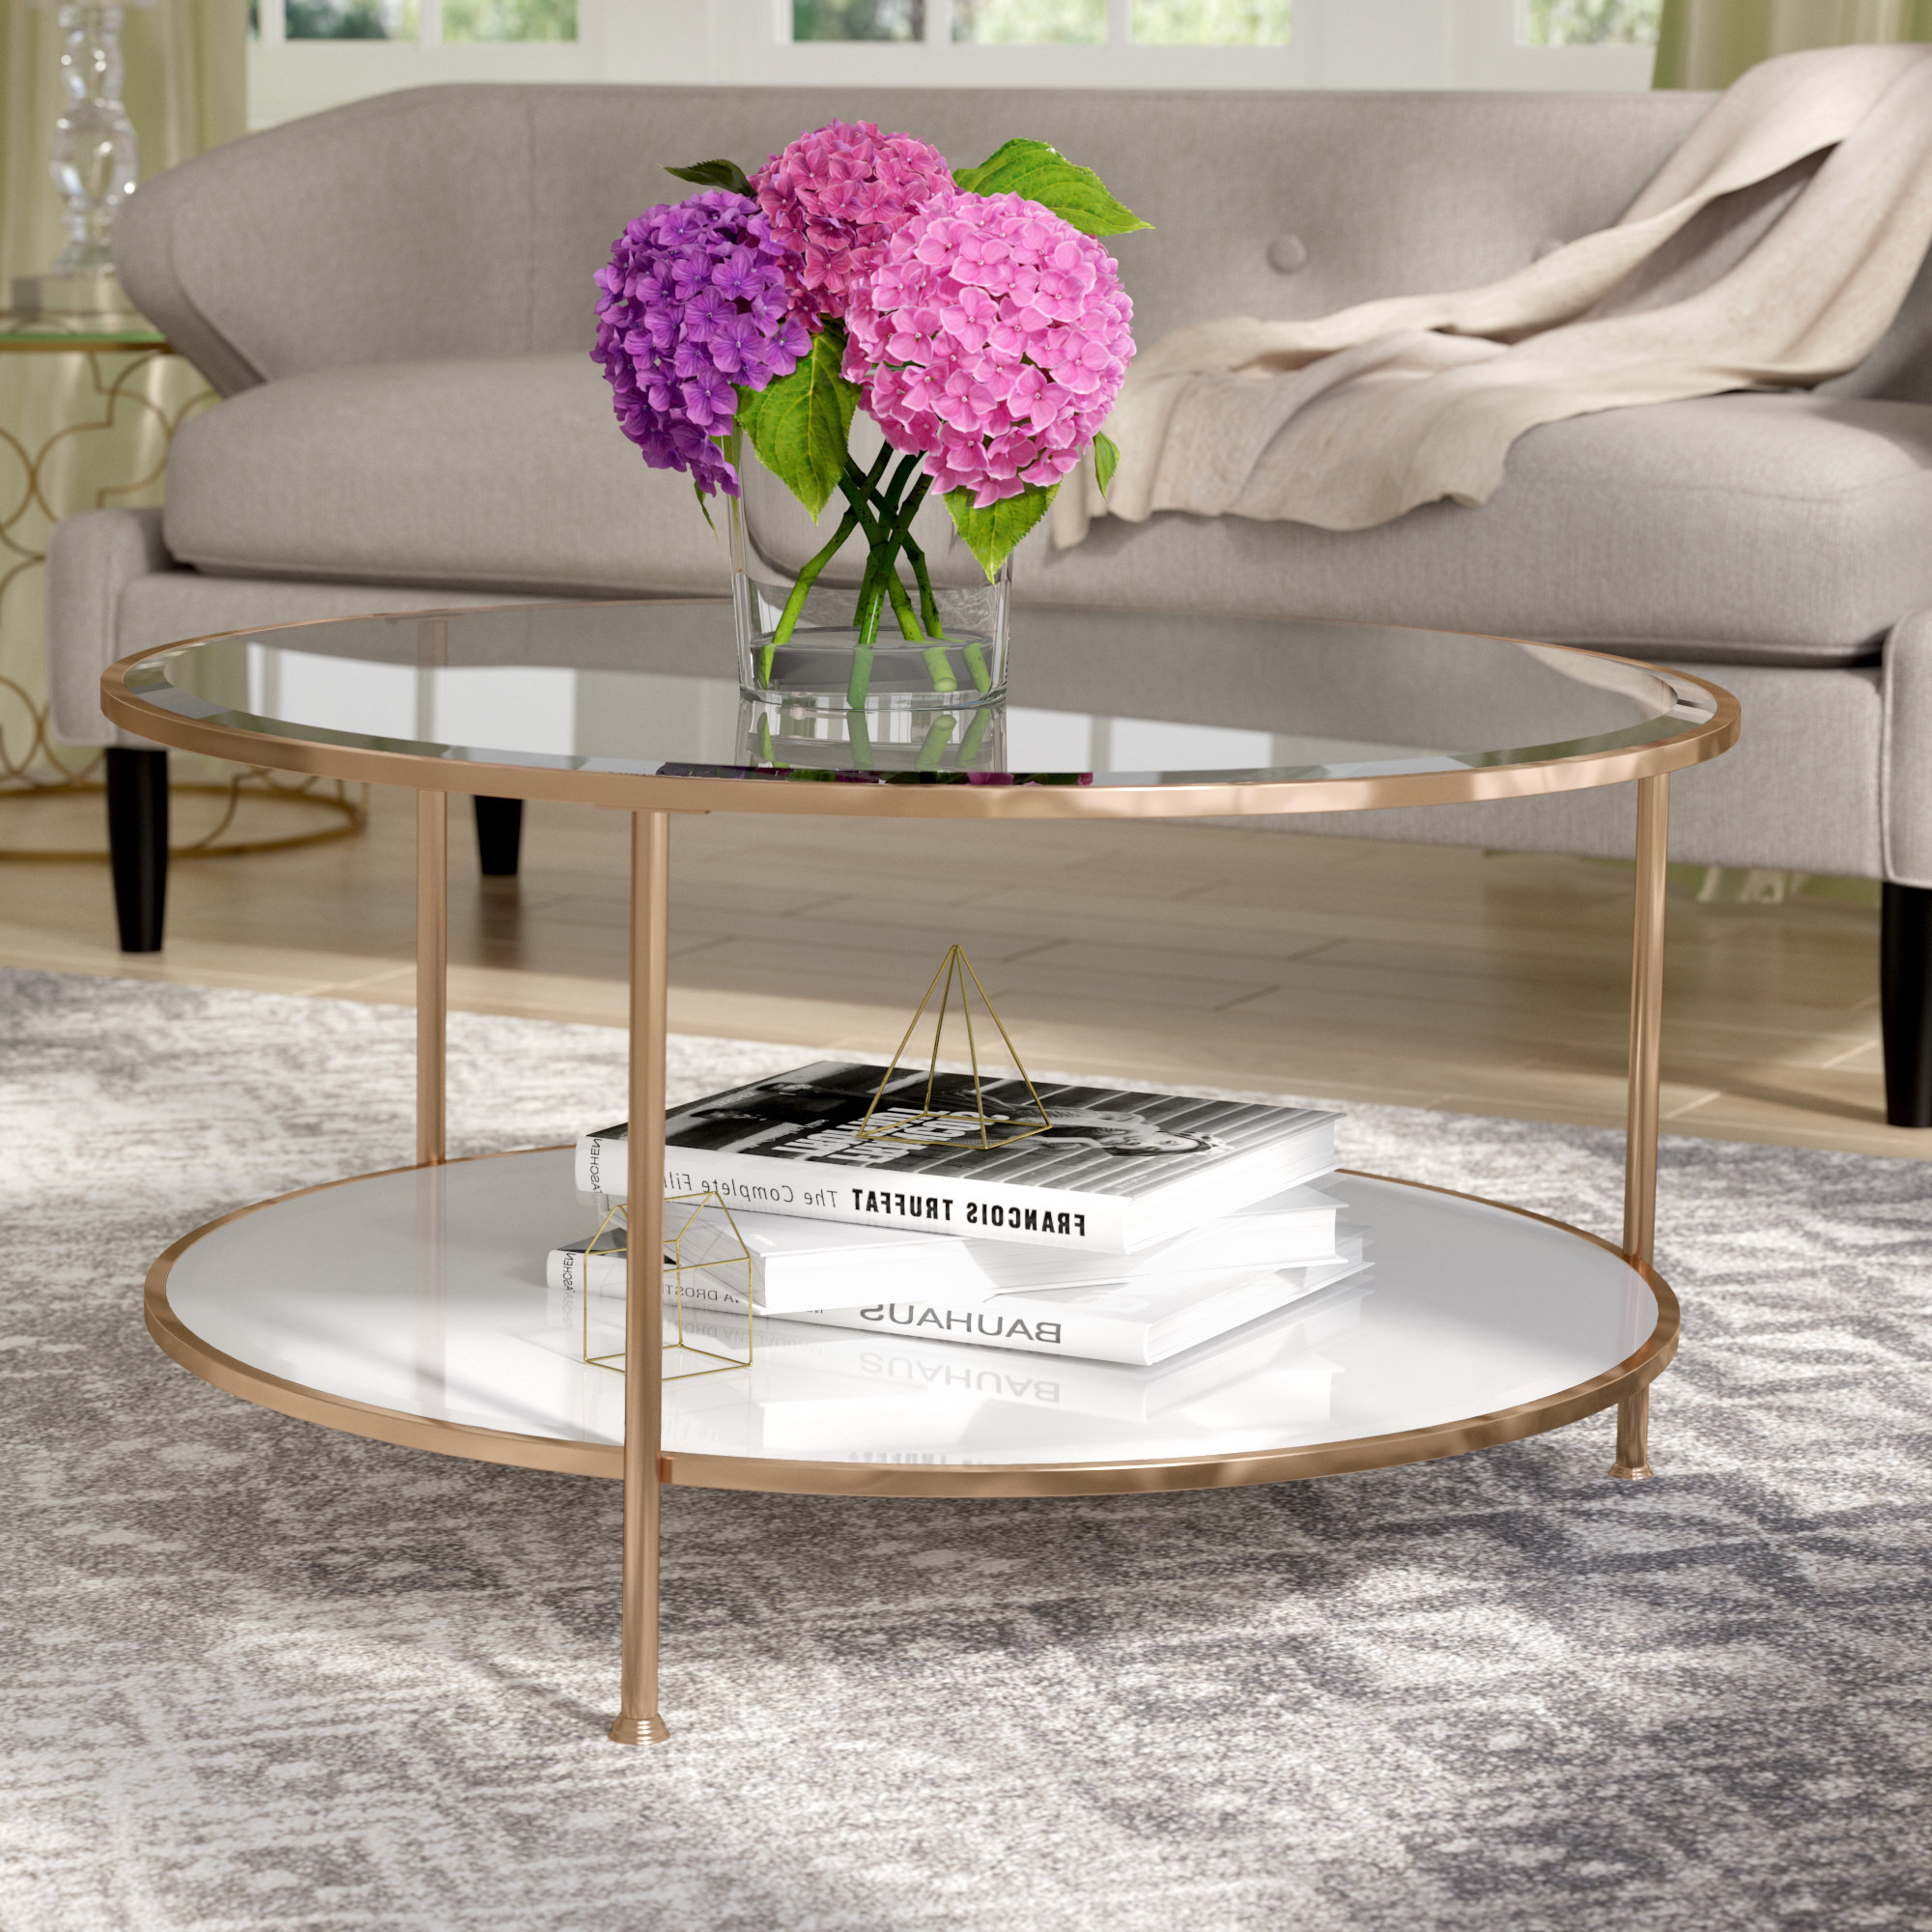 Wayfair Regarding Most Recent Round White Wash Brass Painted Coffee Tables (Gallery 11 of 20)